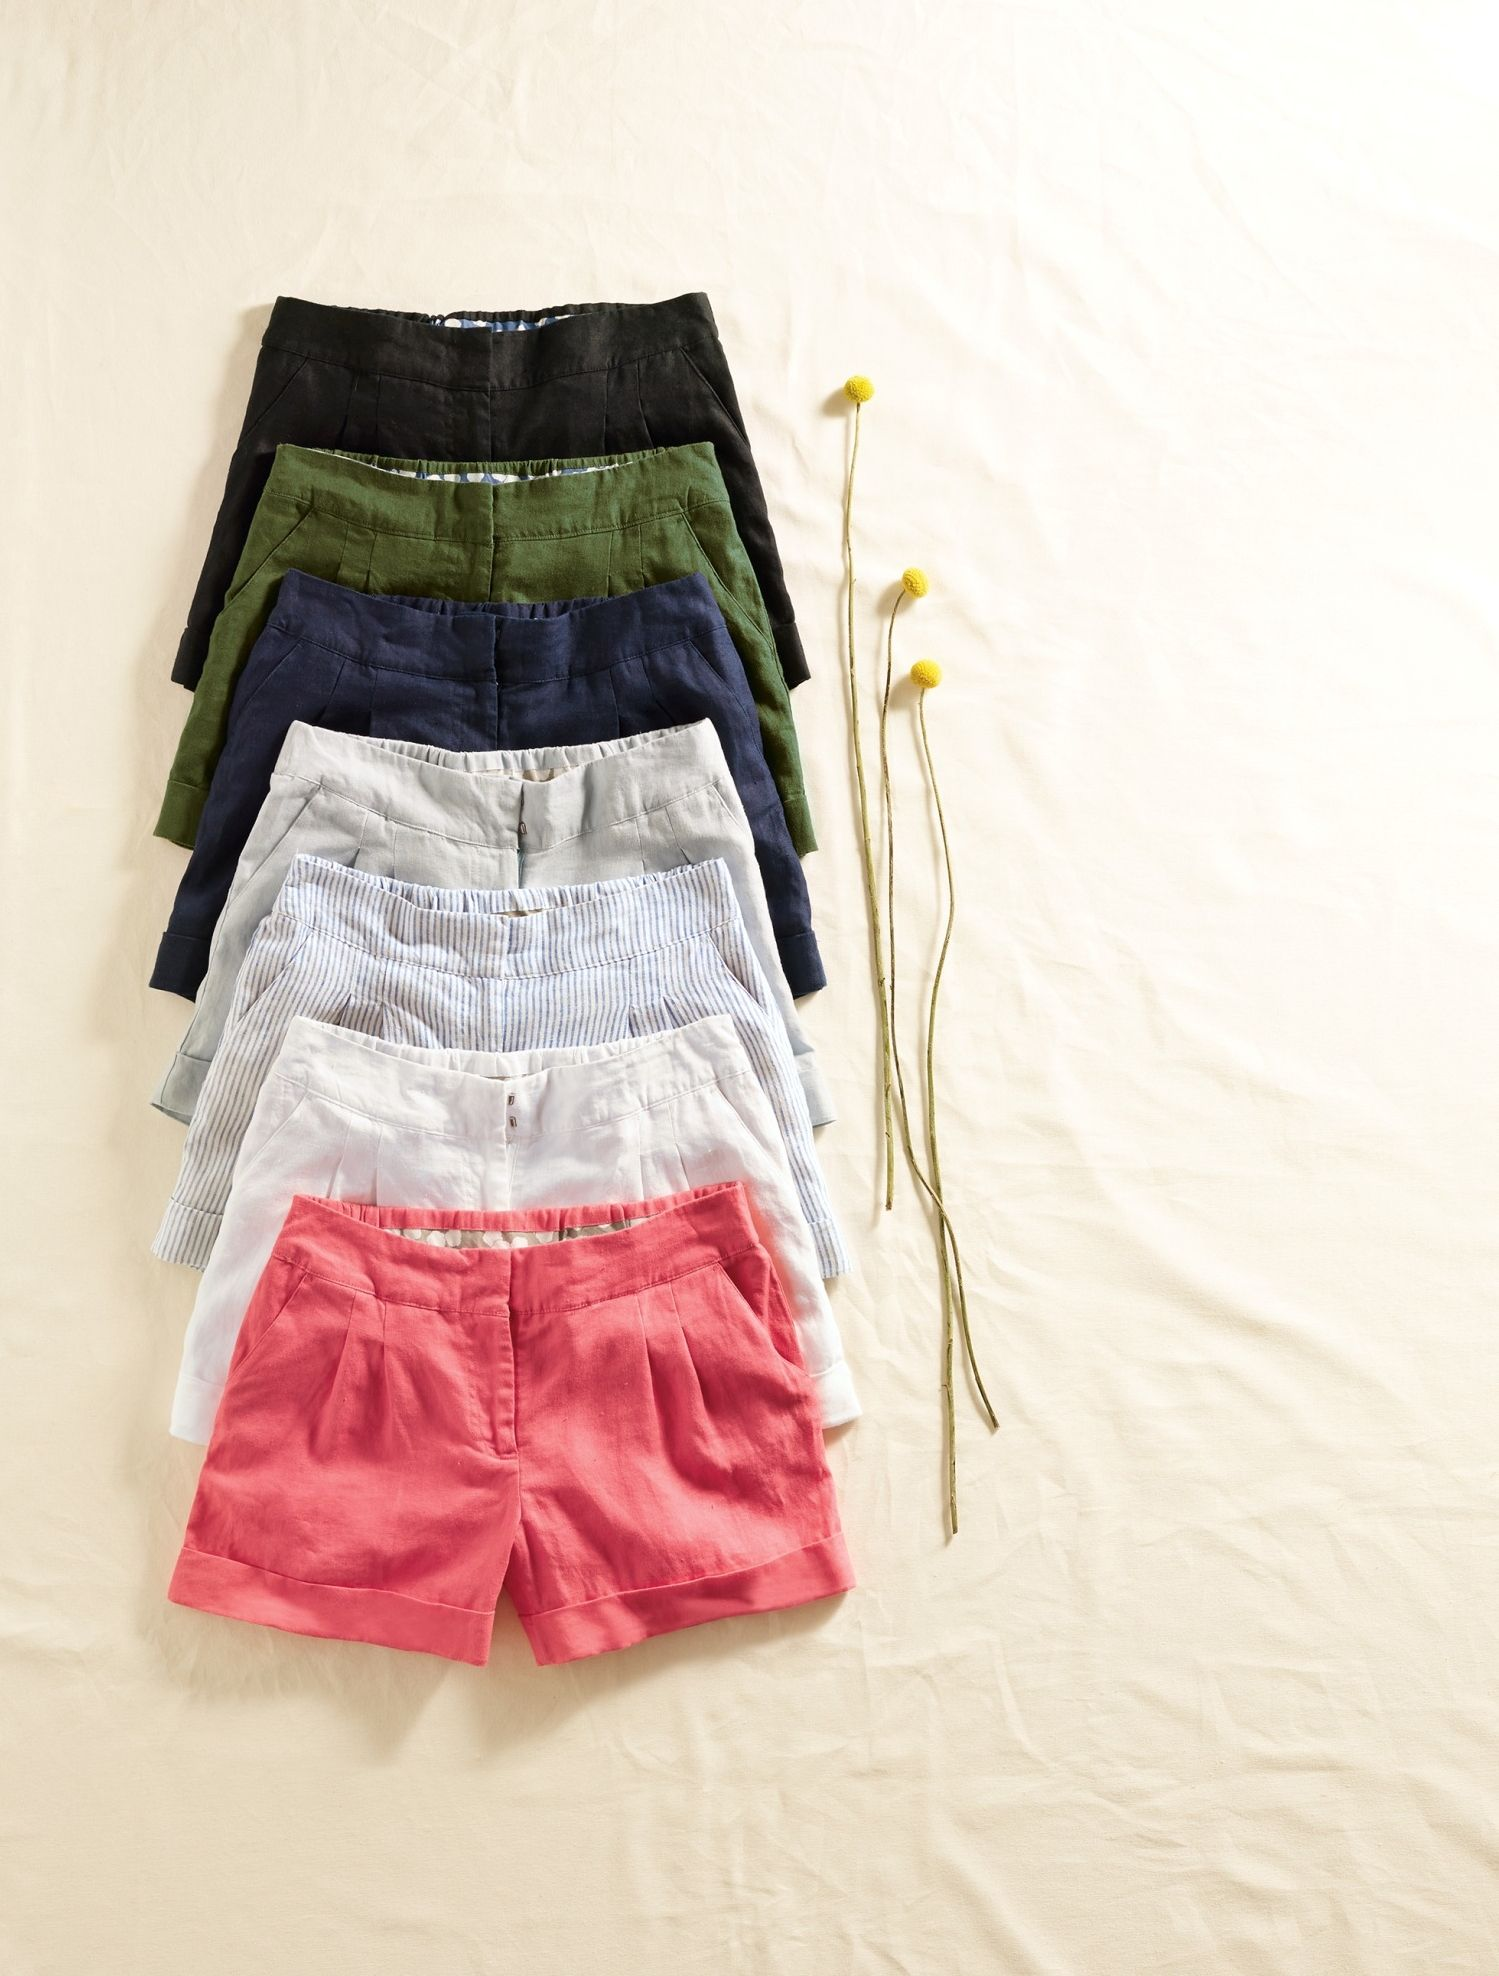 We like short shorts. And medium ones. And long ones, come to think of it. Good thing these stylish shorts come in three different lengths, then. Turn-up detailing gives them a fresh look and lightweight linen is perfect for hot, sunny days. Choose from seven colours and patterns, including life-of-the-party coral and stripes.